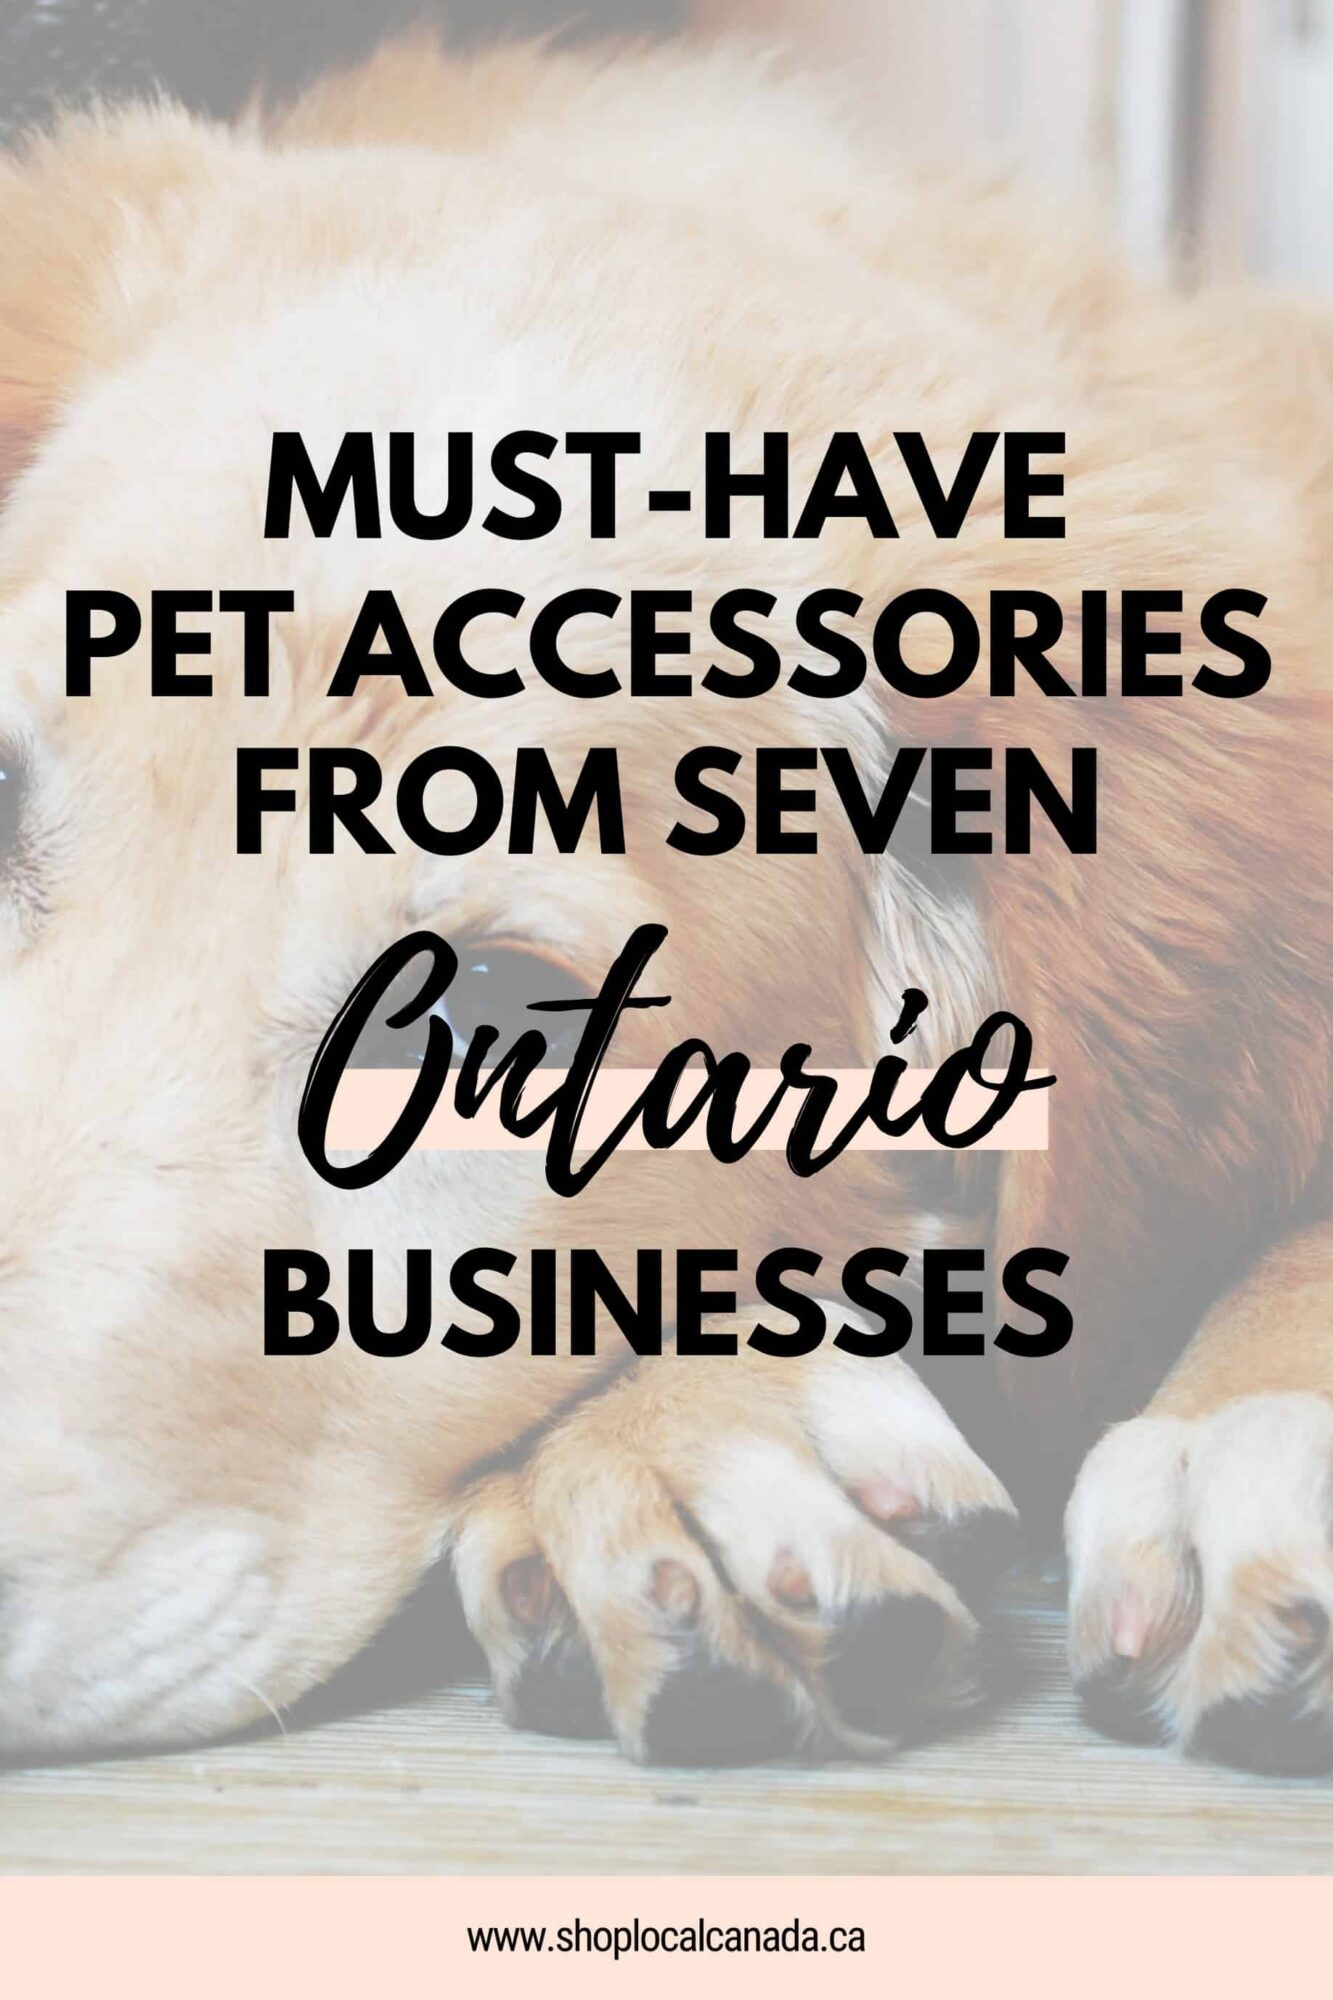 Must-Have Pet Accessories from Seven Ontario Businesses